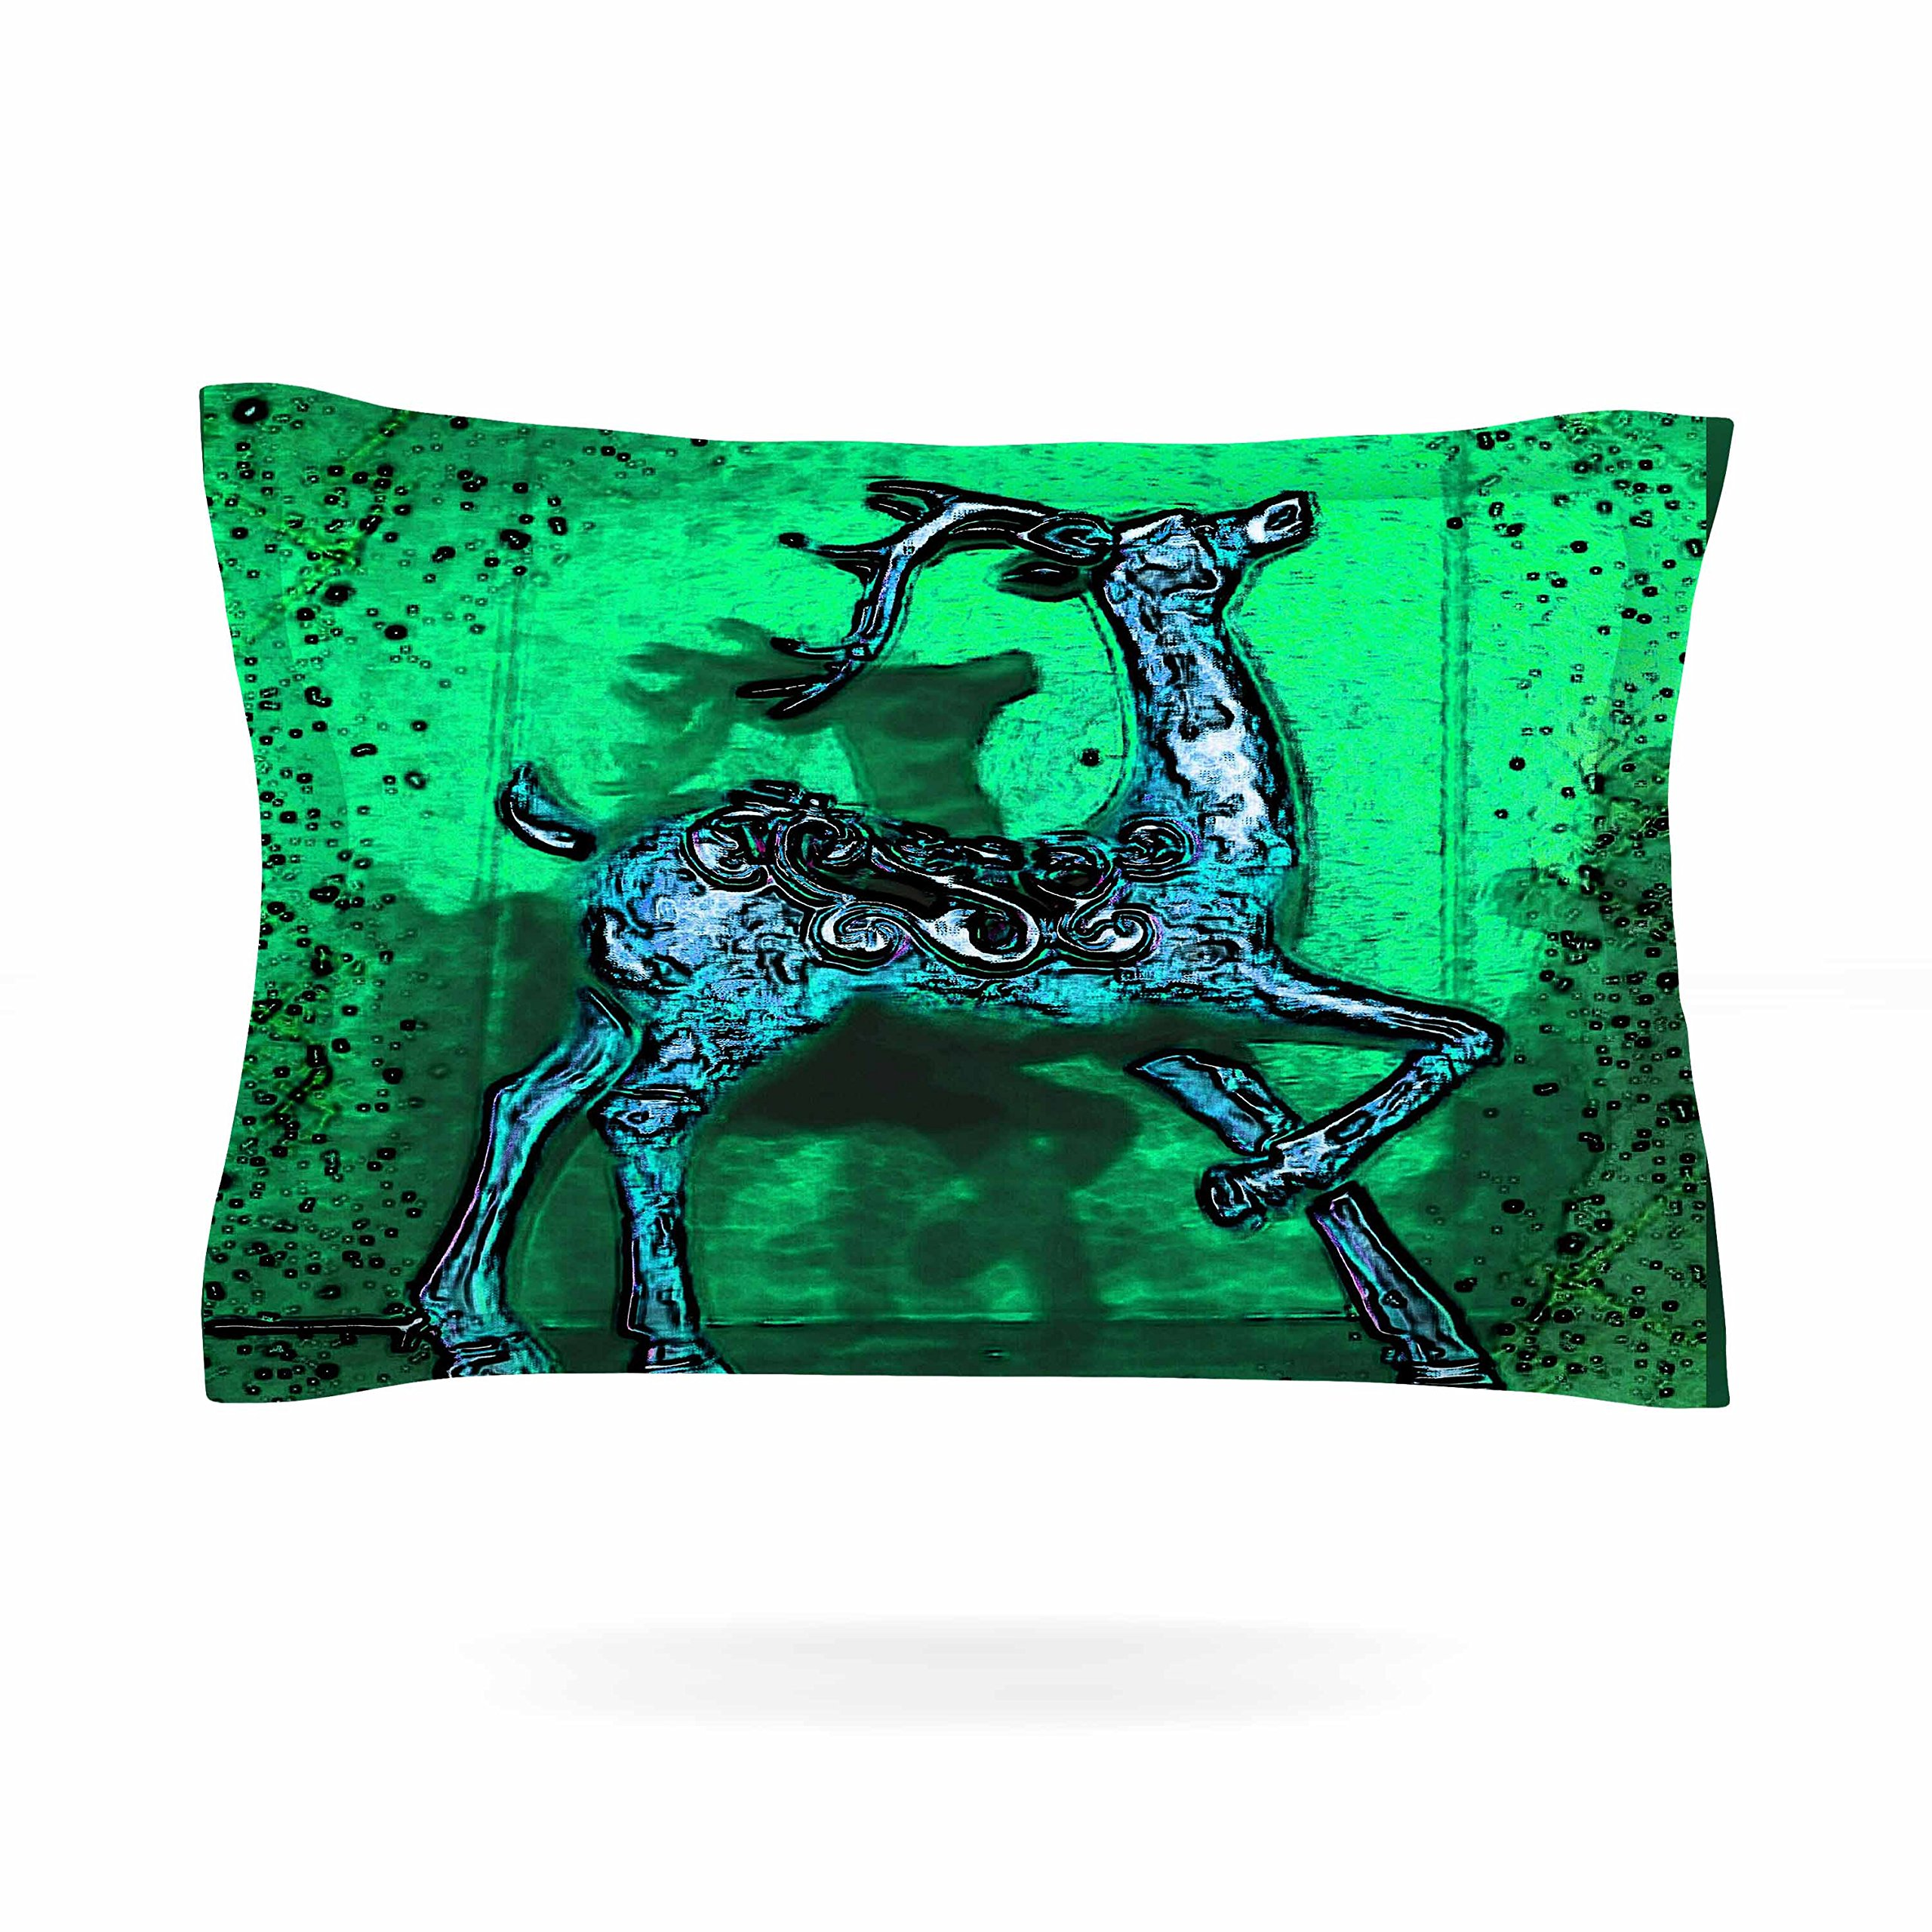 KESS InHouse Anne LaBrie ''Dance On'' Green Blue  Pillow Sham, 40'' x 20''